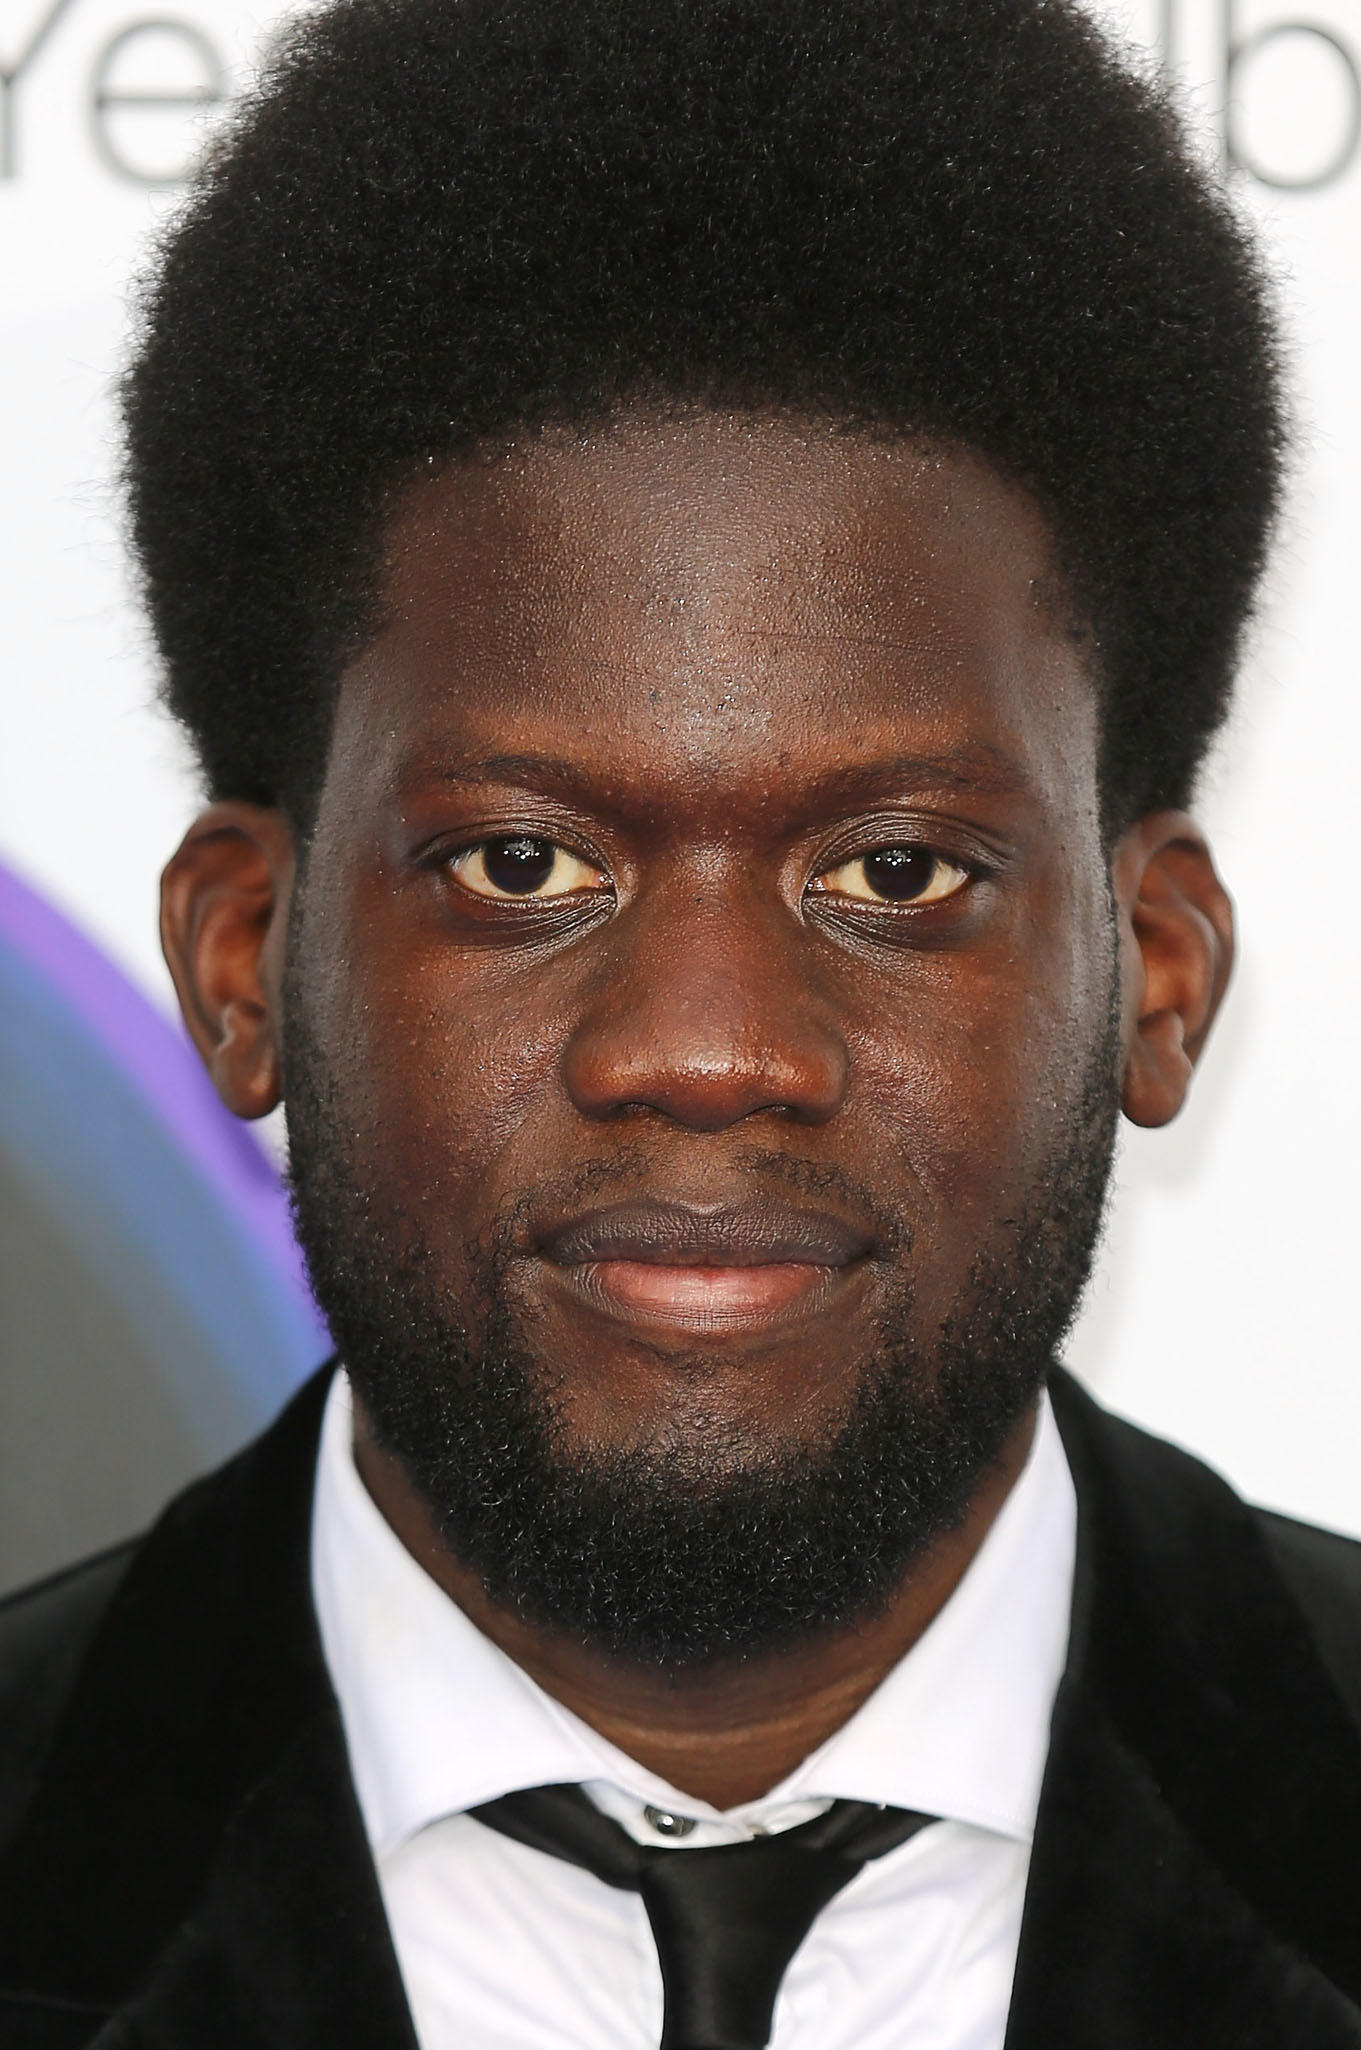 Michael Kiwanuka at the Hyundai Mercury Prize 2016 in London.